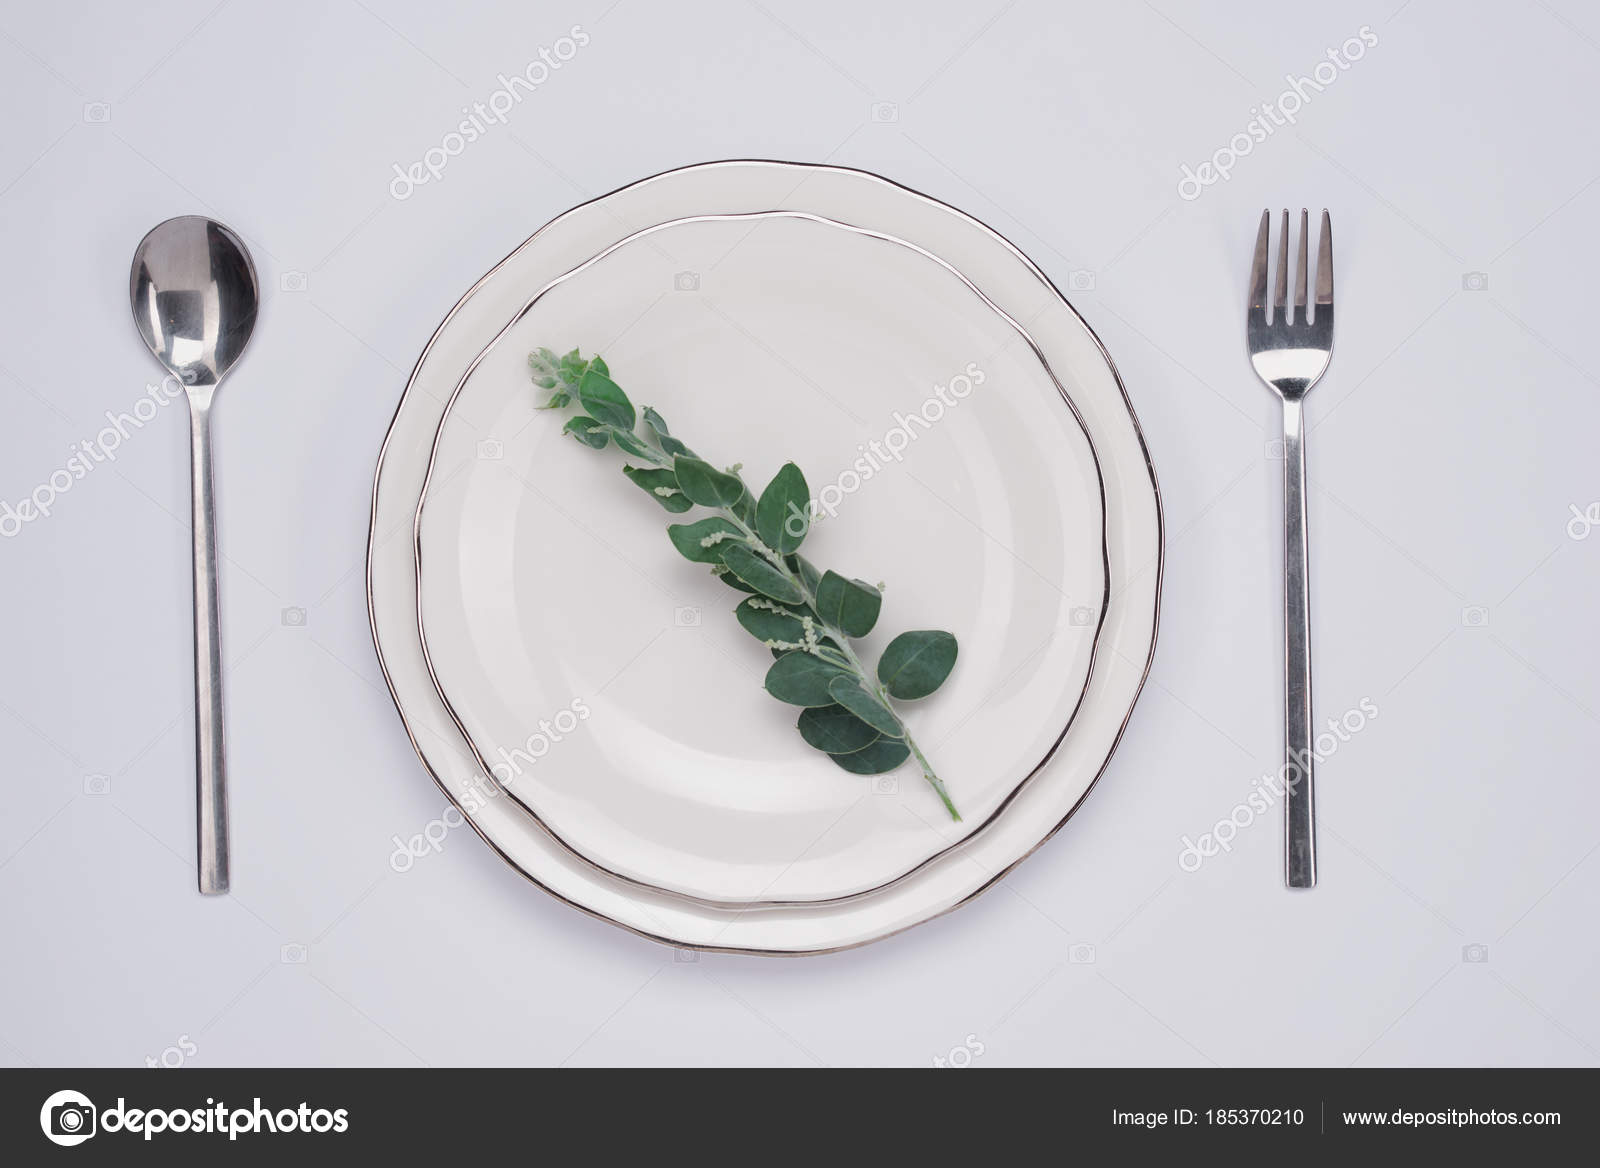 Dinner Plate Setting Top View Empty Plate Silverware Set Wooden u2014 Stock Photo  sc 1 st  Depositphotos : dinner plate setting - Pezcame.Com